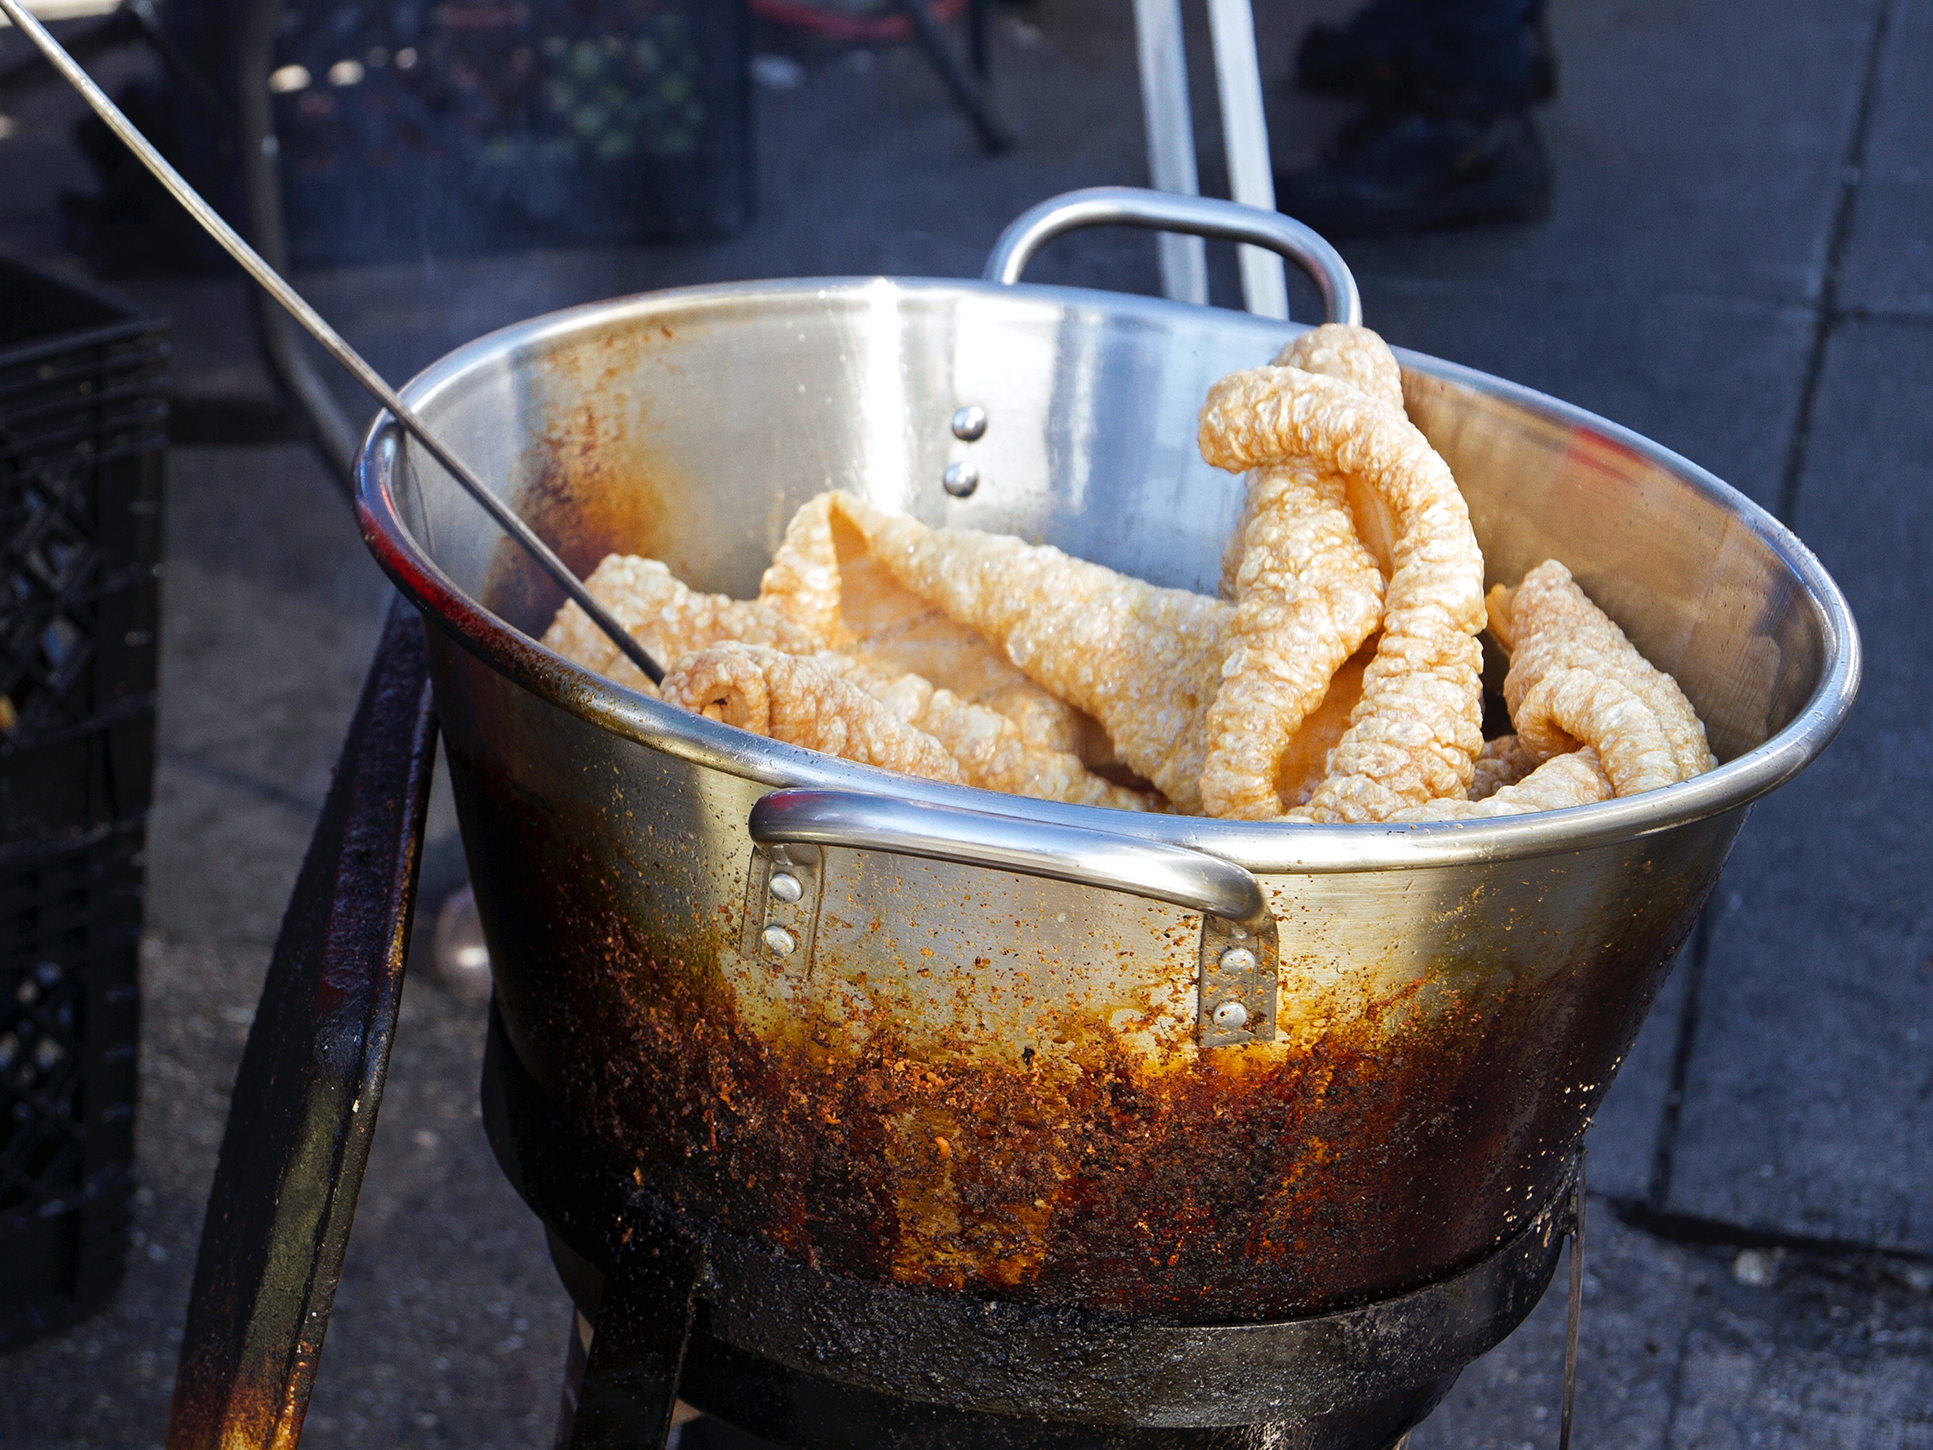 Chicharrones, or pork rinds, fry in the piñata district in Los Angeles.